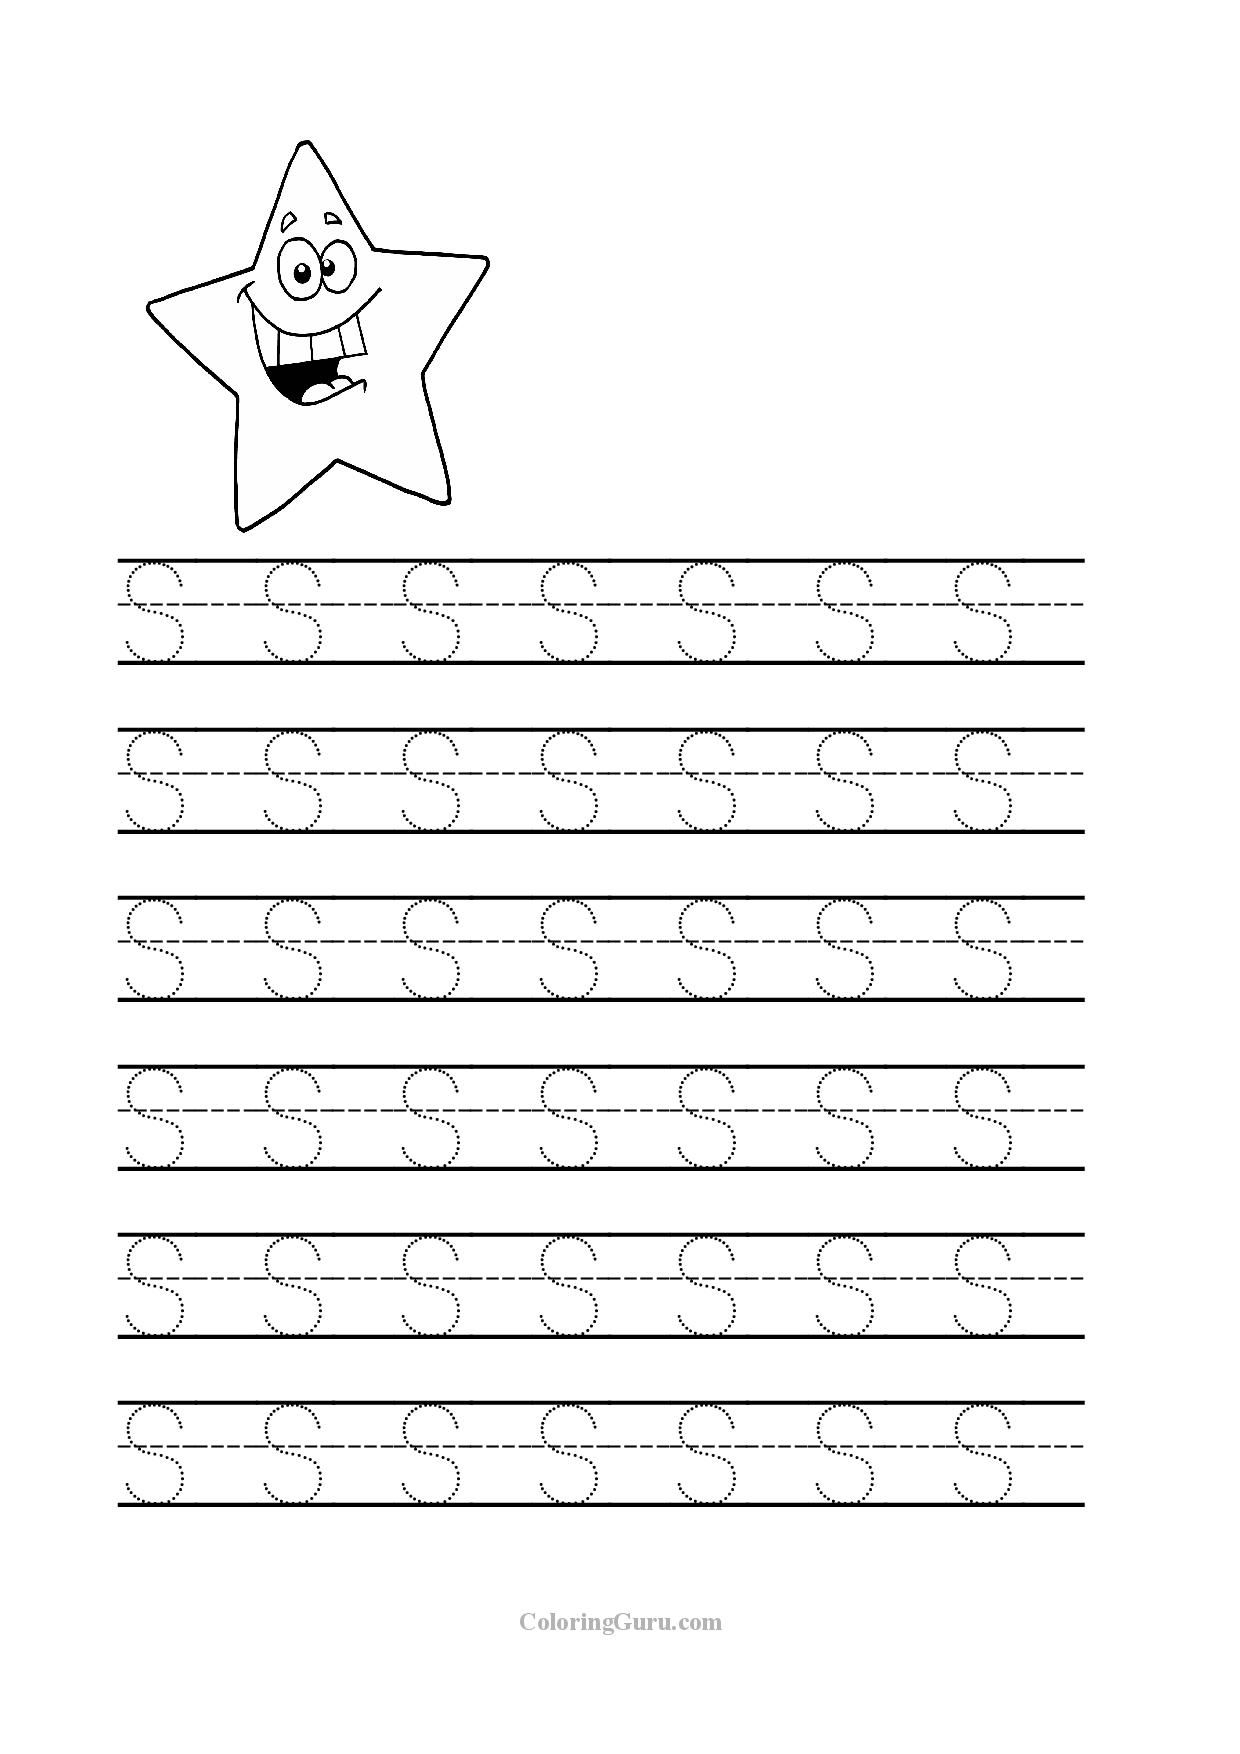 Free Printable Tracing Letter S Worksheets For Preschool inside Preschool Tracing Letters Worksheets Free